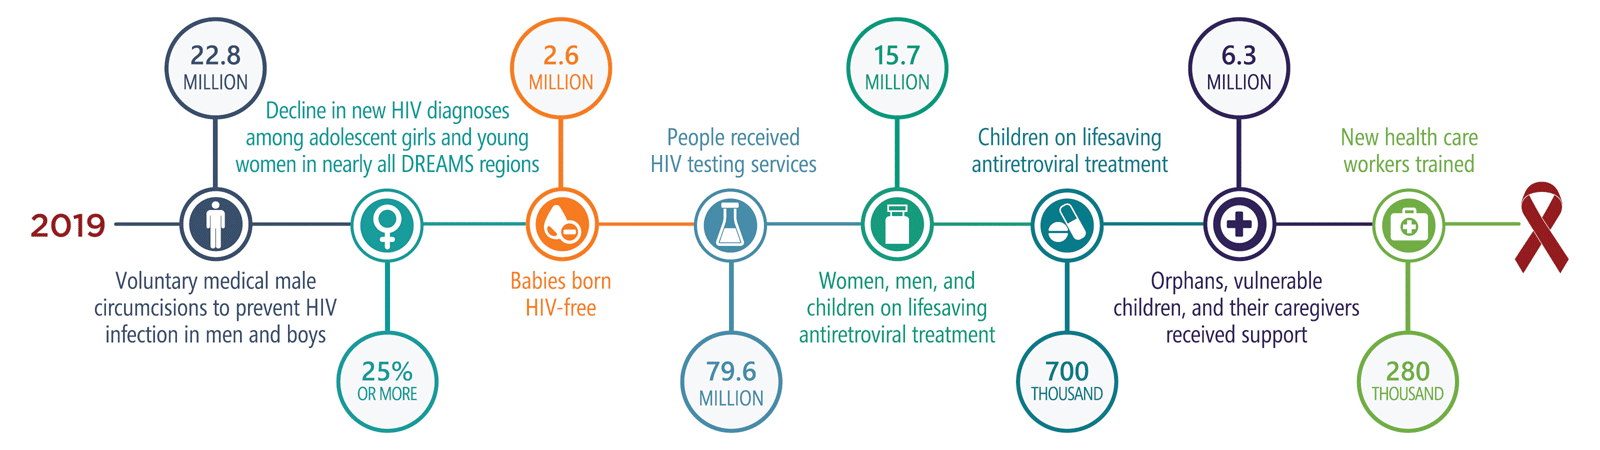 PEPFAR Latest Results Infographic 2019